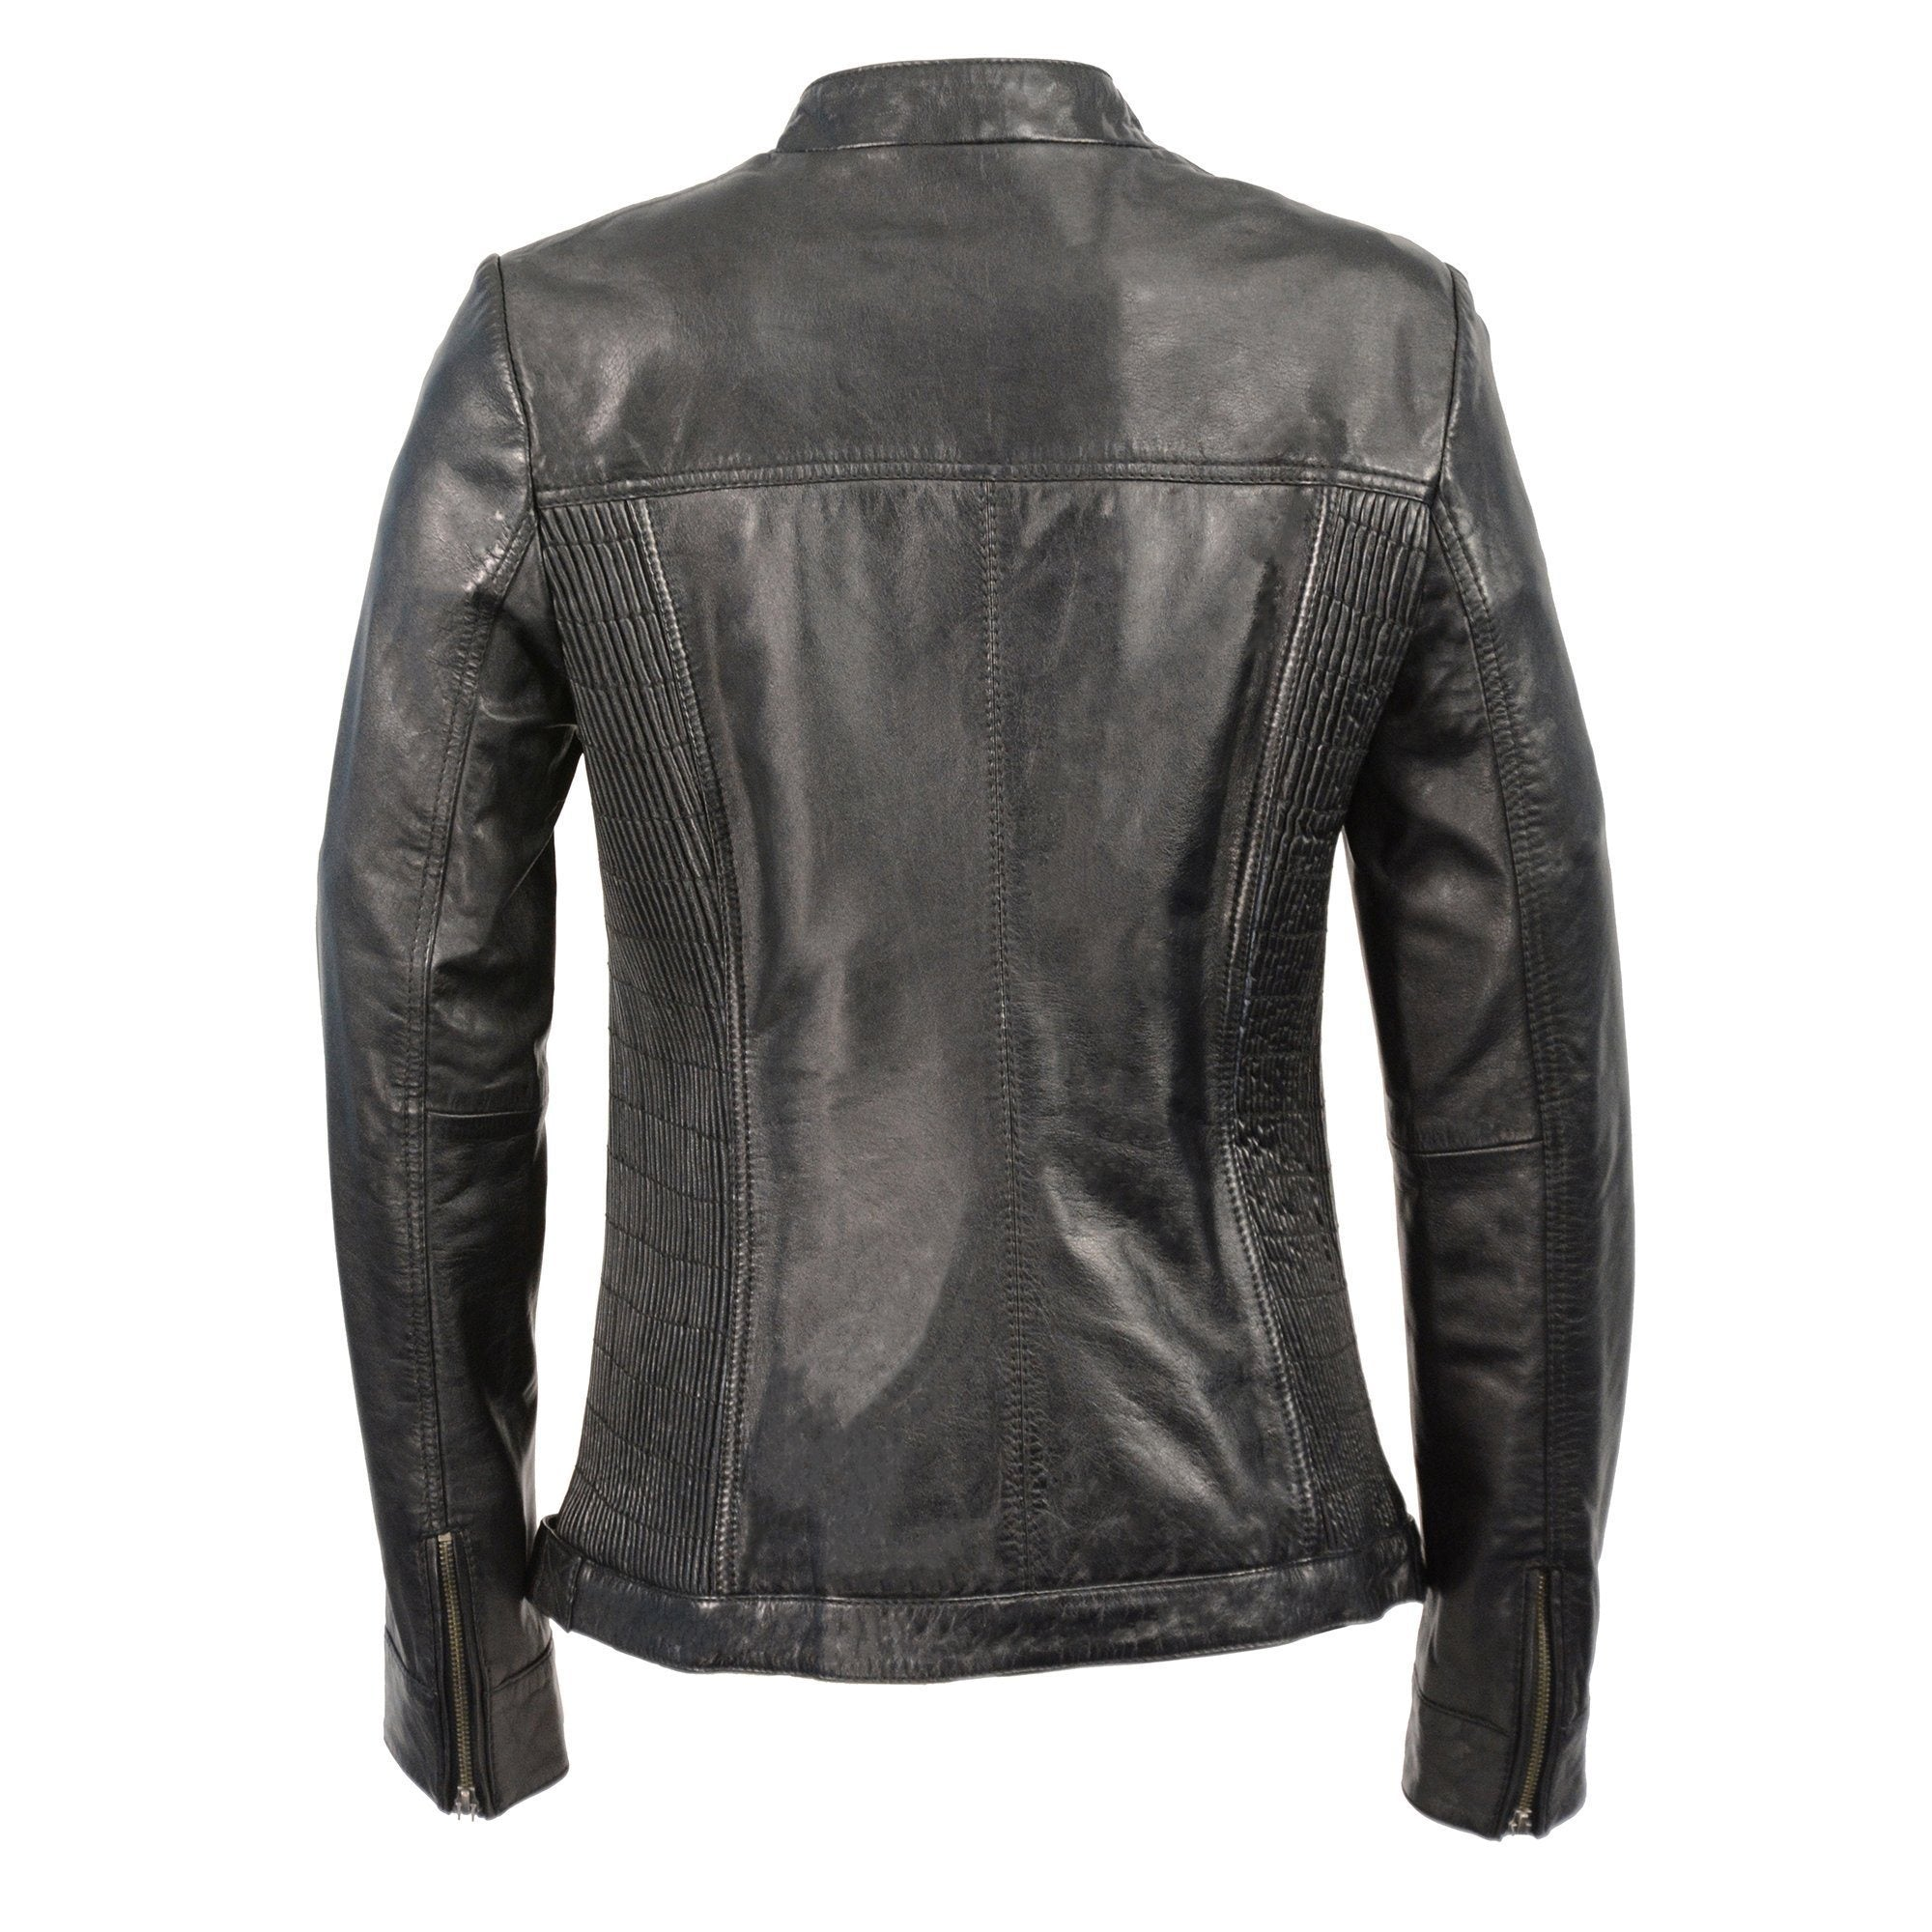 Milwaukee Leather SFL2855 Black Women's Zip Front Leather Jacket with